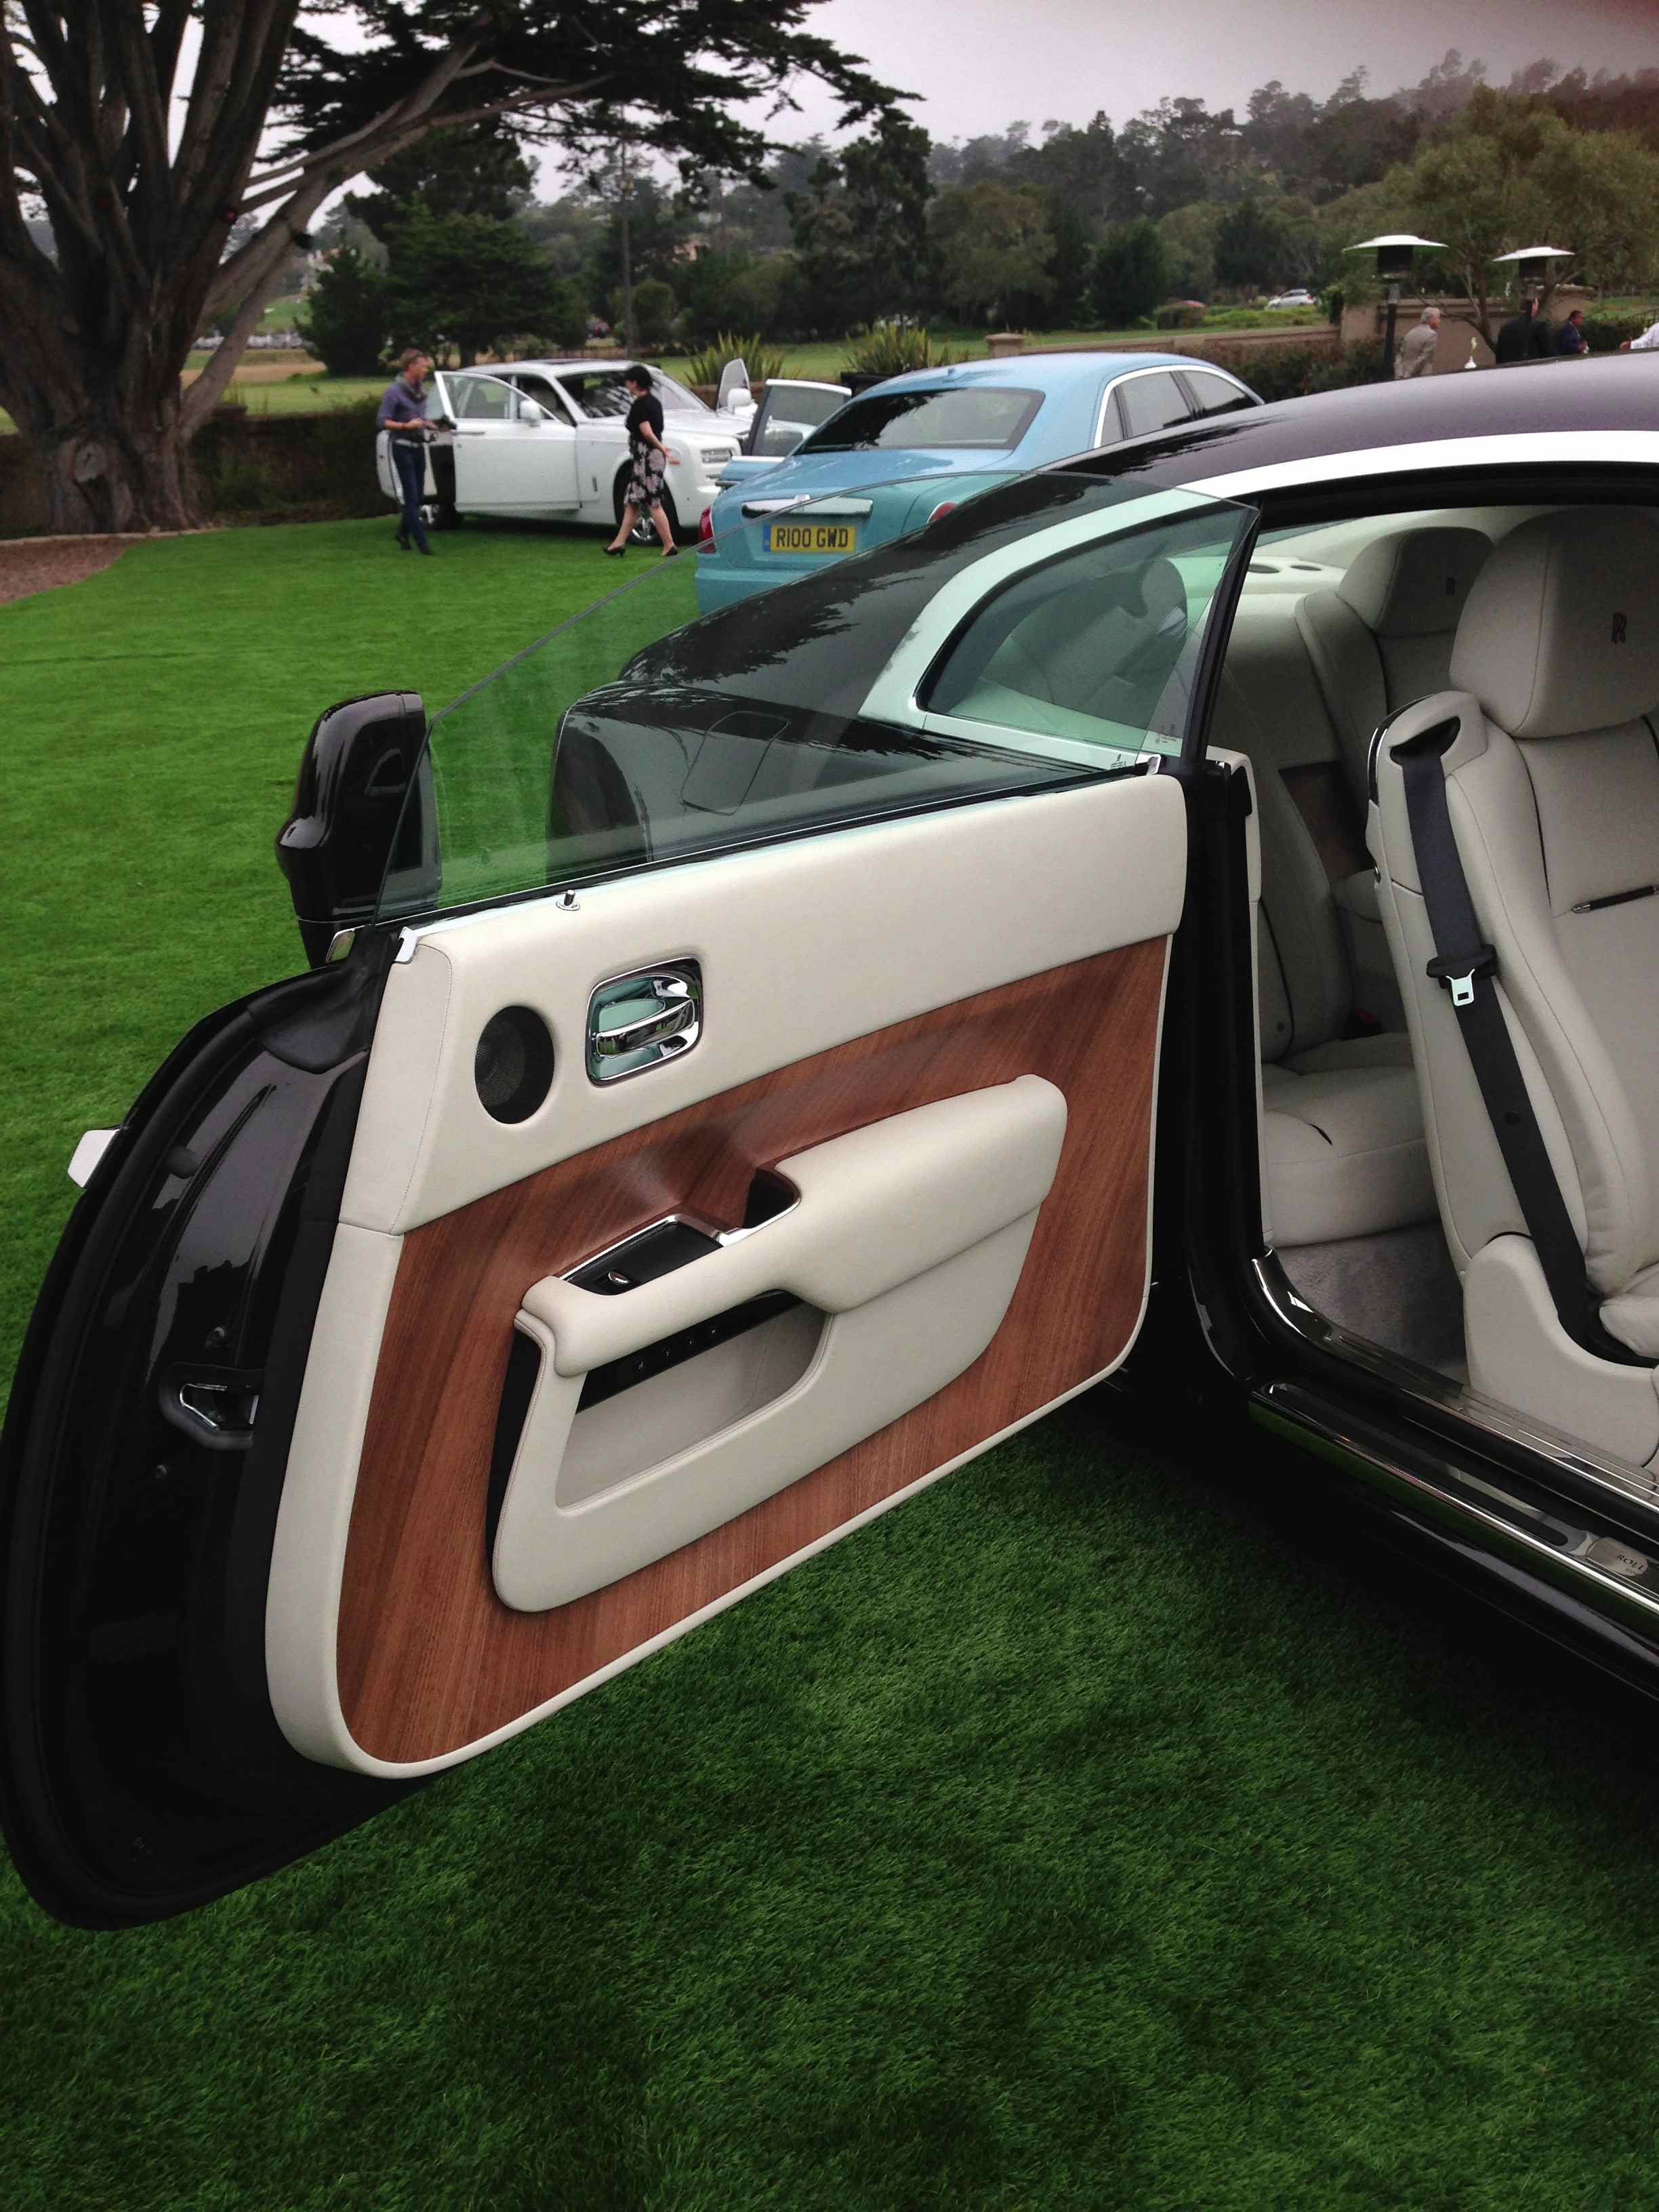 The Rolls-Royce Wraith welcomes you aboard